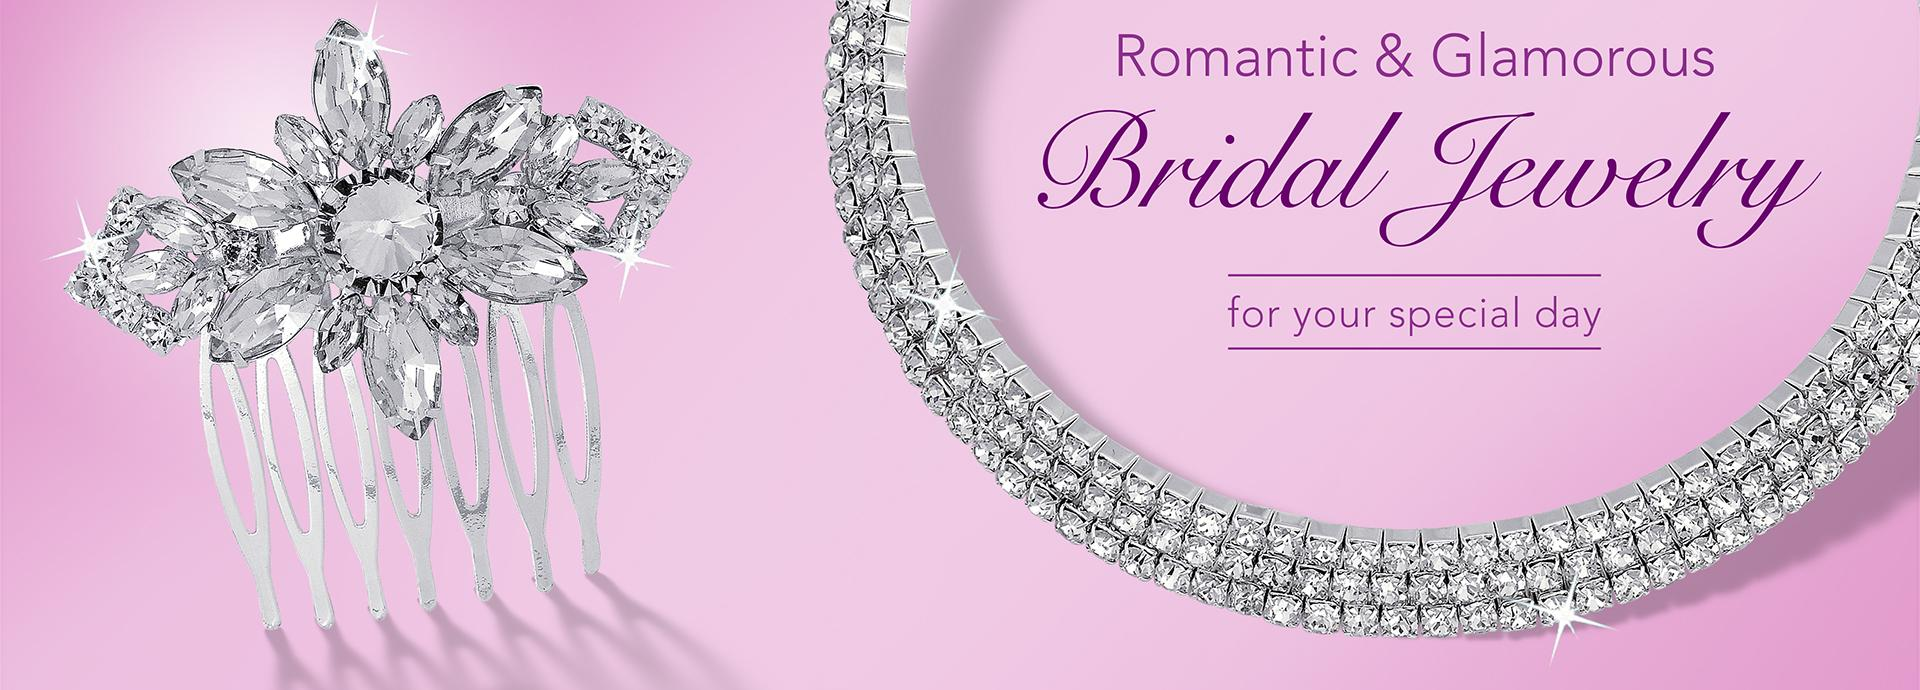 Bridal & Bridesmaid Jewelry